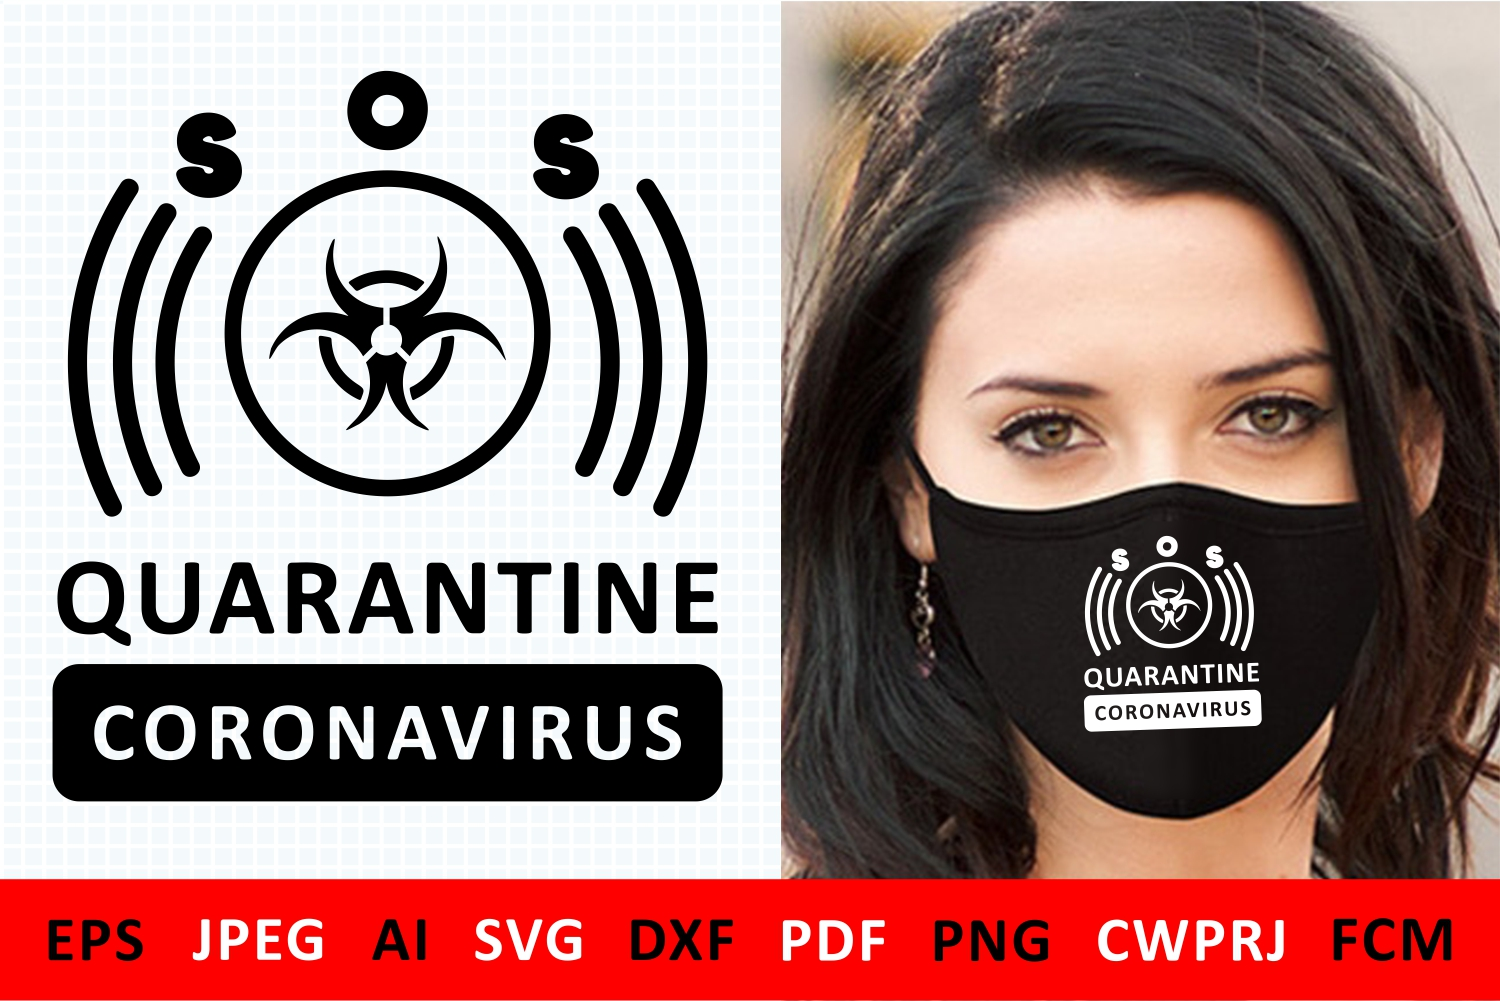 Coronavirus Quarantine Icon Graphic By Millerzoa Creative Fabrica